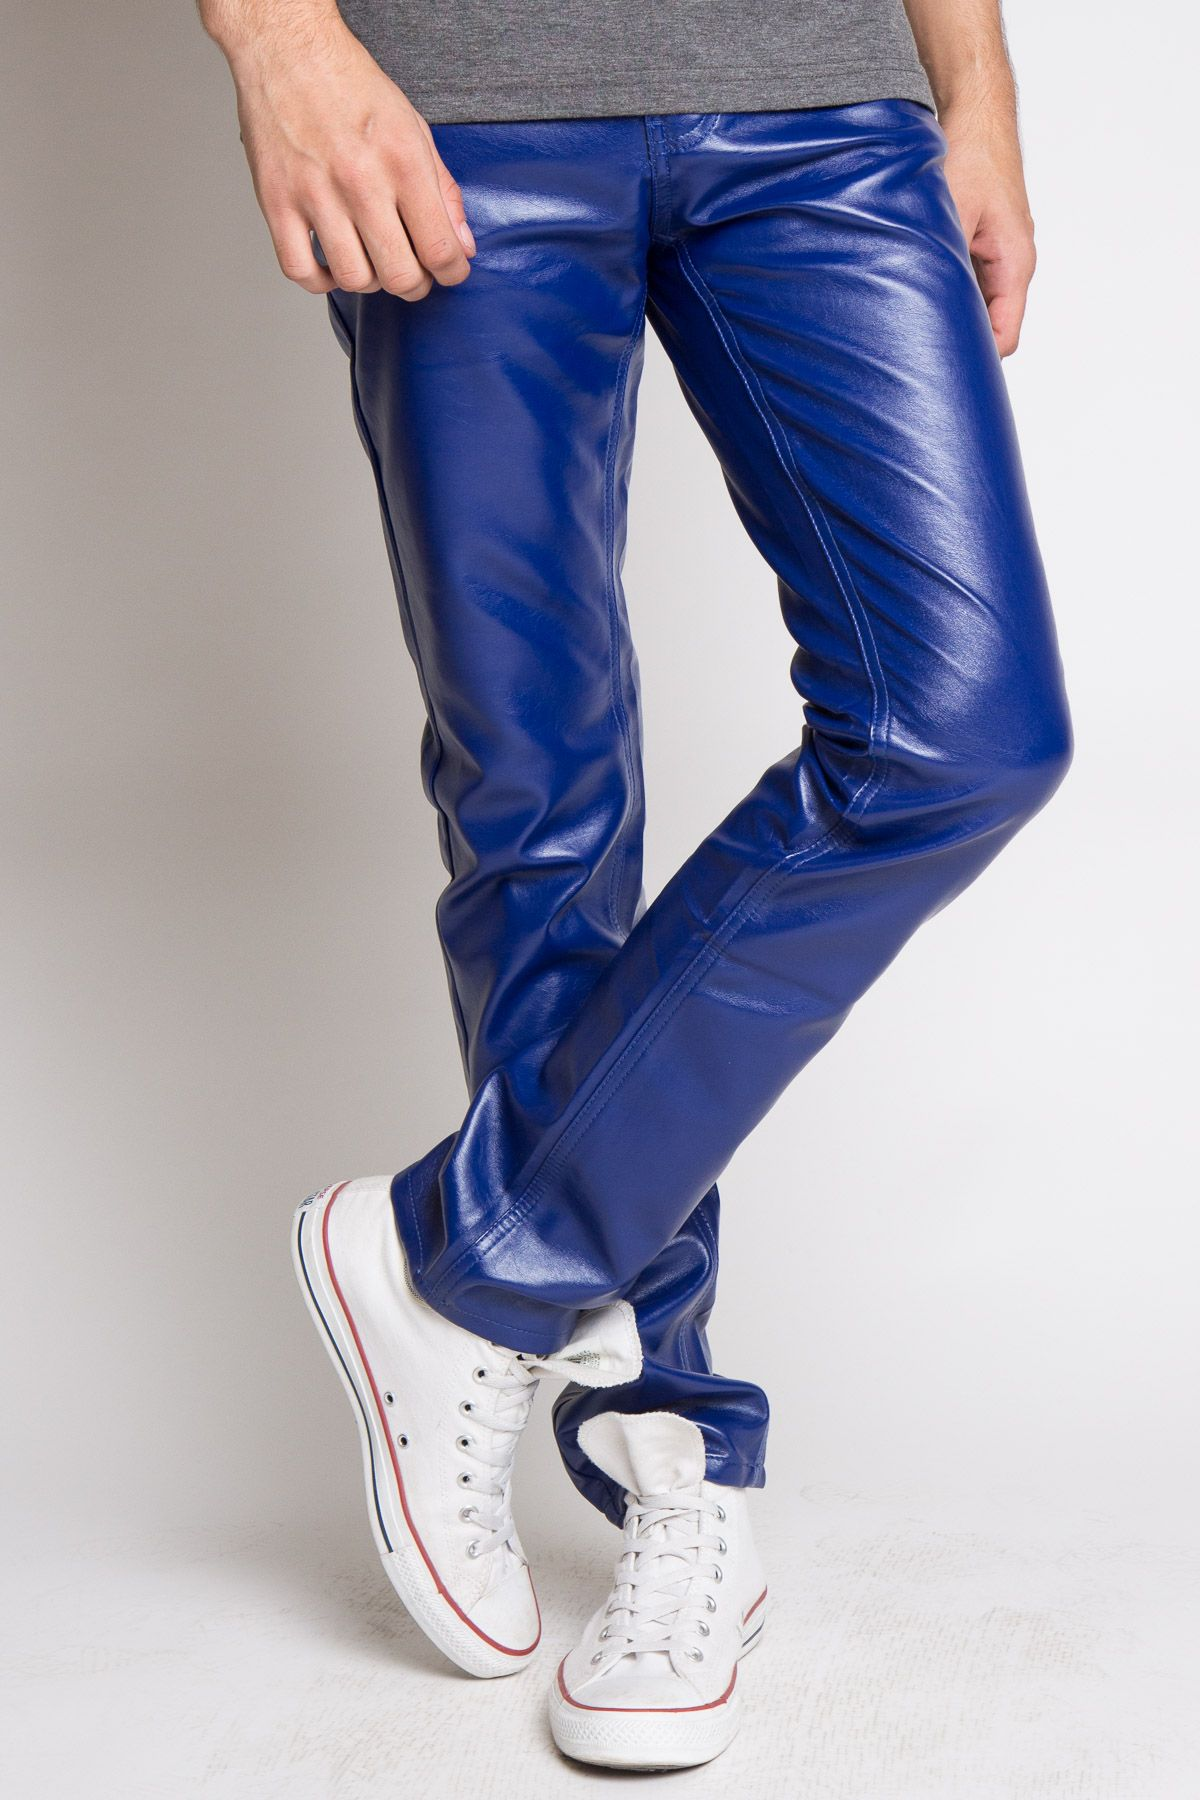 enjoy free shipping details for discount coupon Metallic Jeans | Mens in 2019 | Metallic jeans, Blue pants ...